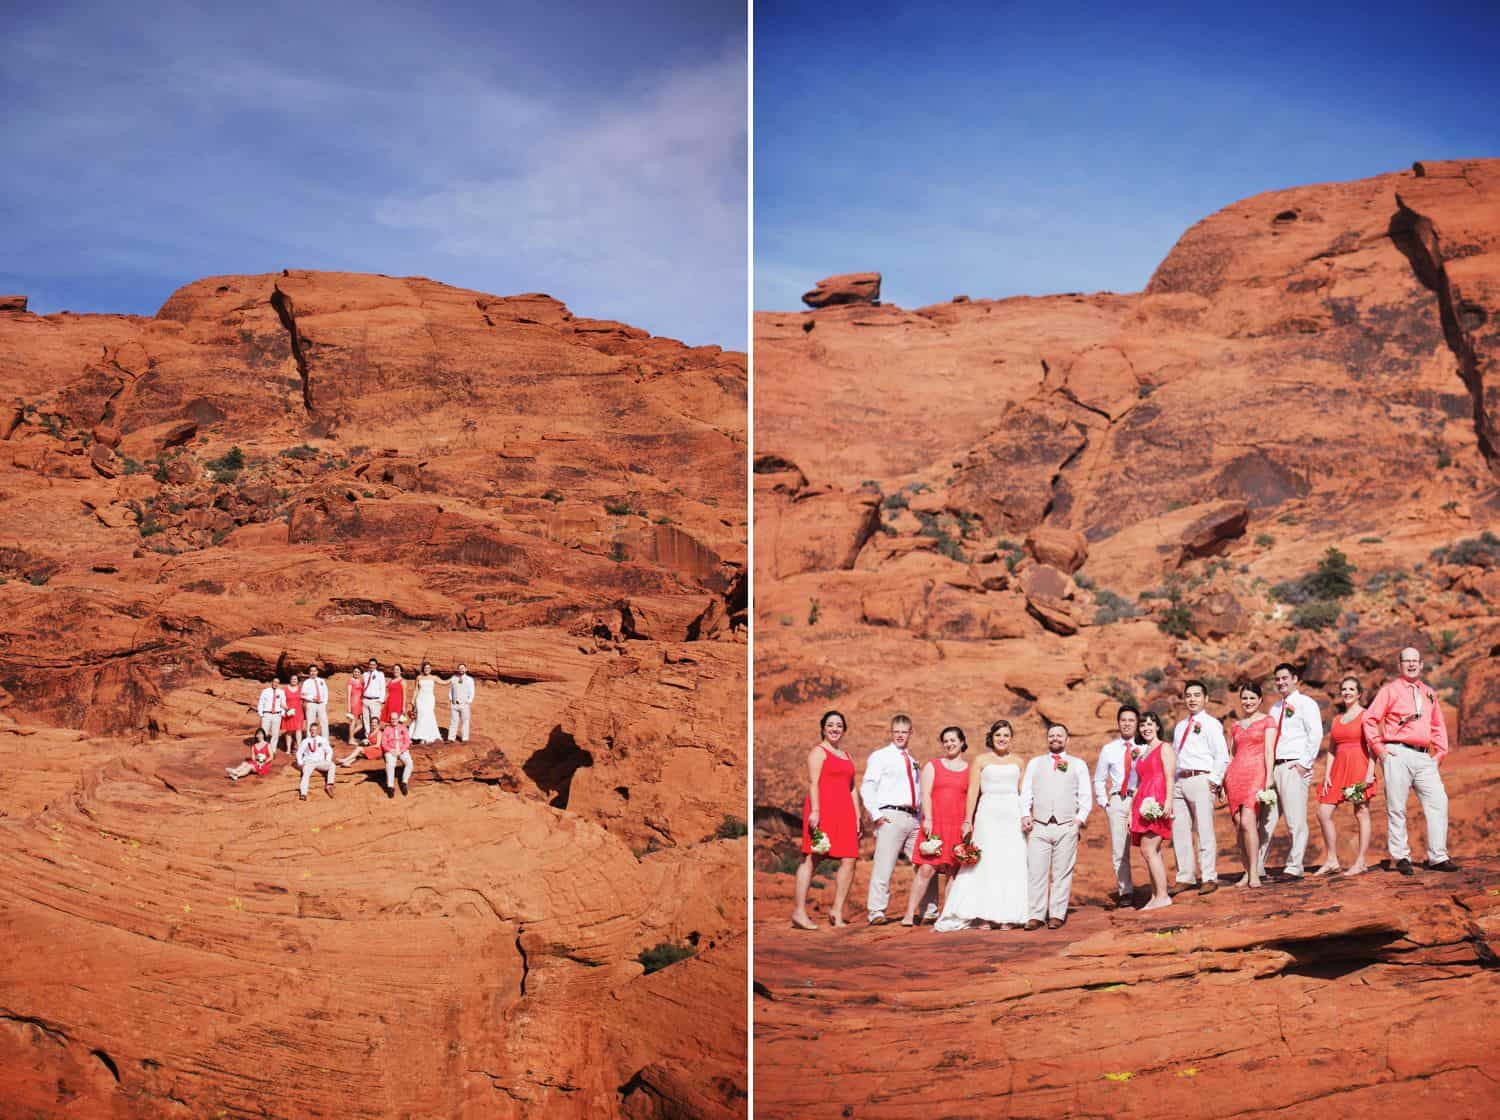 A wedding party poses on the red rocks of a western landscape.